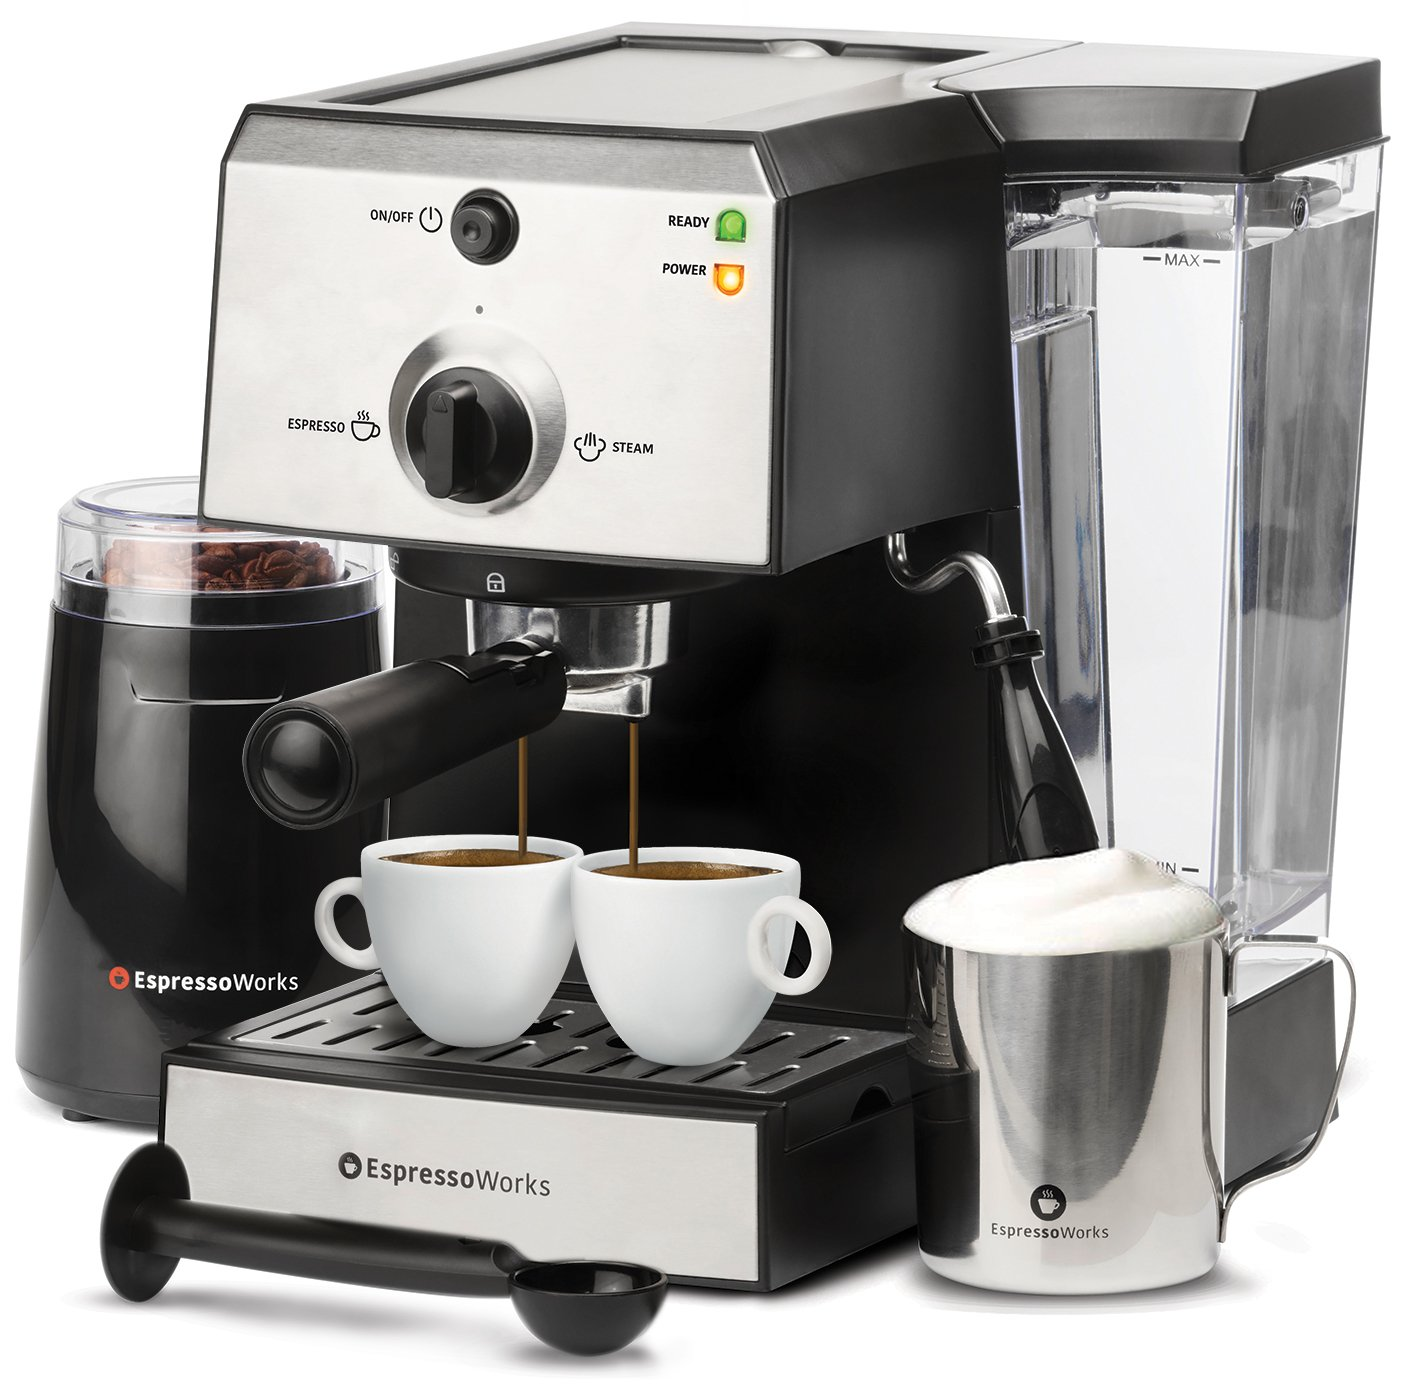 7 Pc All-In-One Espresso Machine & Cappuccino Maker Barista Bundle Set w/ Built-In Steamer & Frother (Inc: Coffee Bean Grinder, Portafilter, Milk Frothing Cup, Spoon/Tamper & 2 Cups), Stainless Steel by EspressoWorks